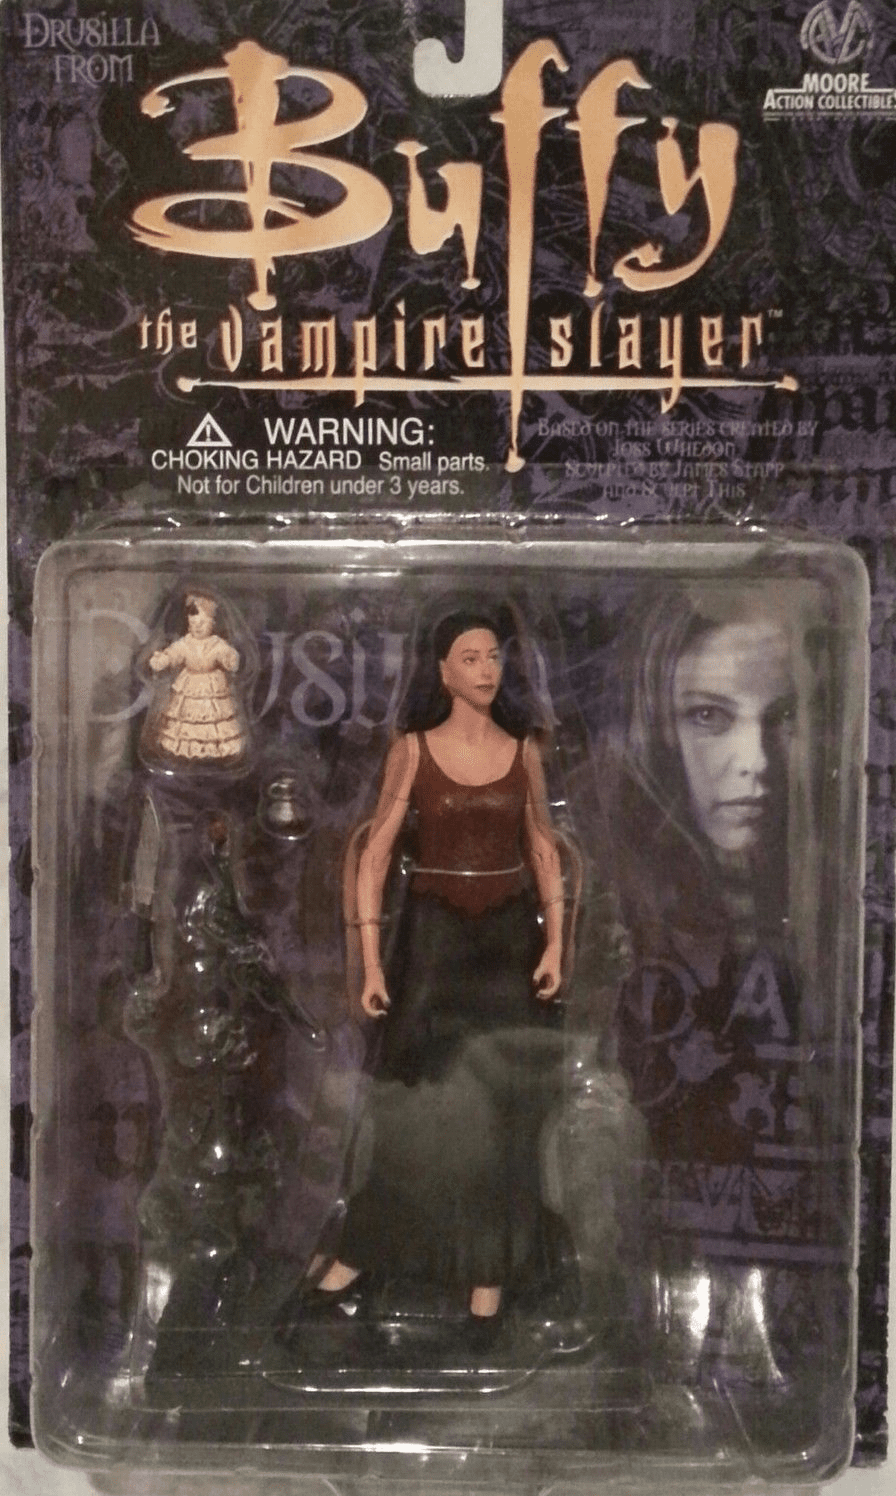 Moore Action Collectibles Buffy The Vampire Slayer Drusilla Figure